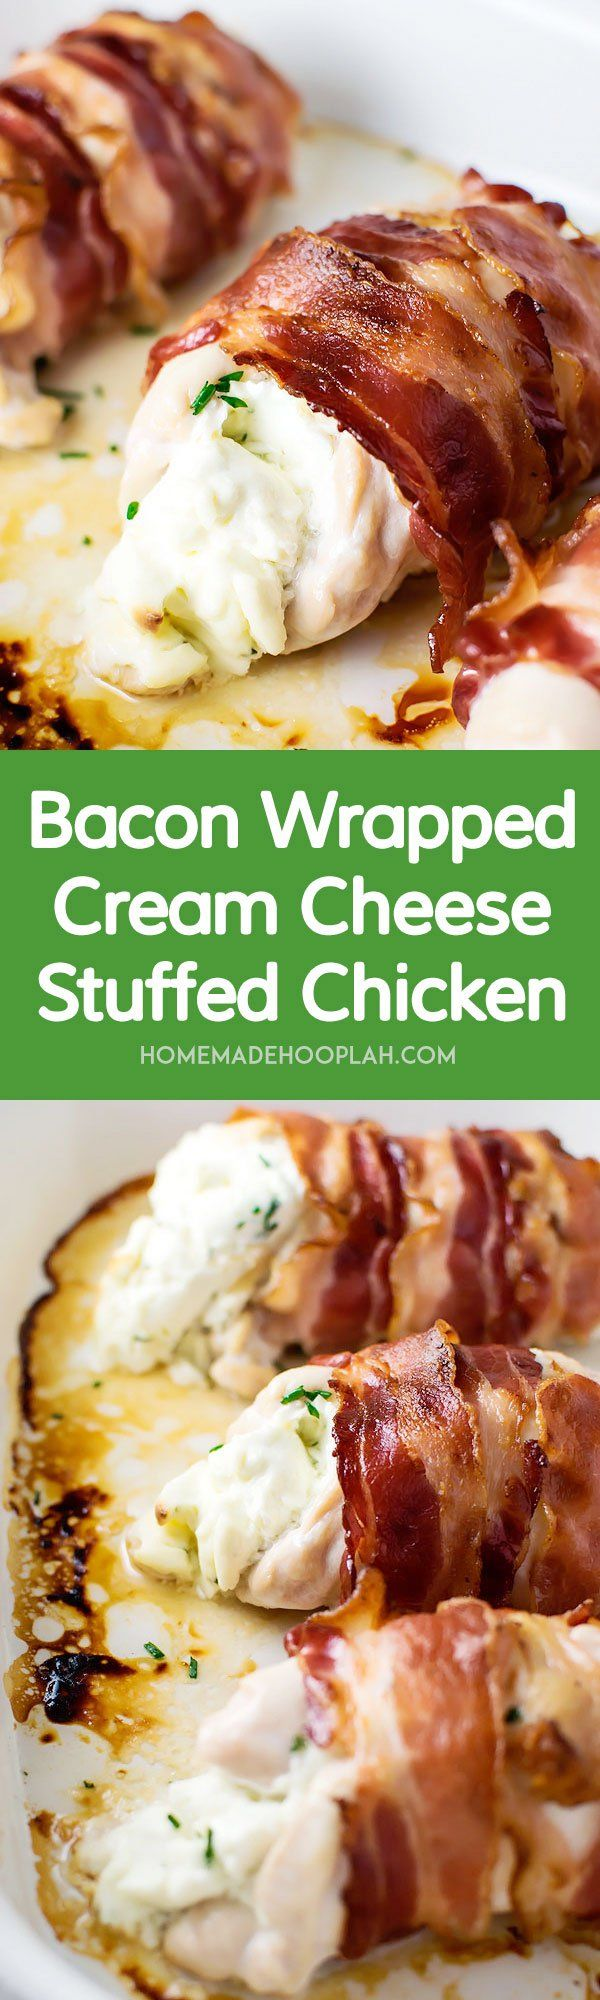 Bacon Wrapped Cream Cheese Stuffed Chicken! Tender chicken breast ...